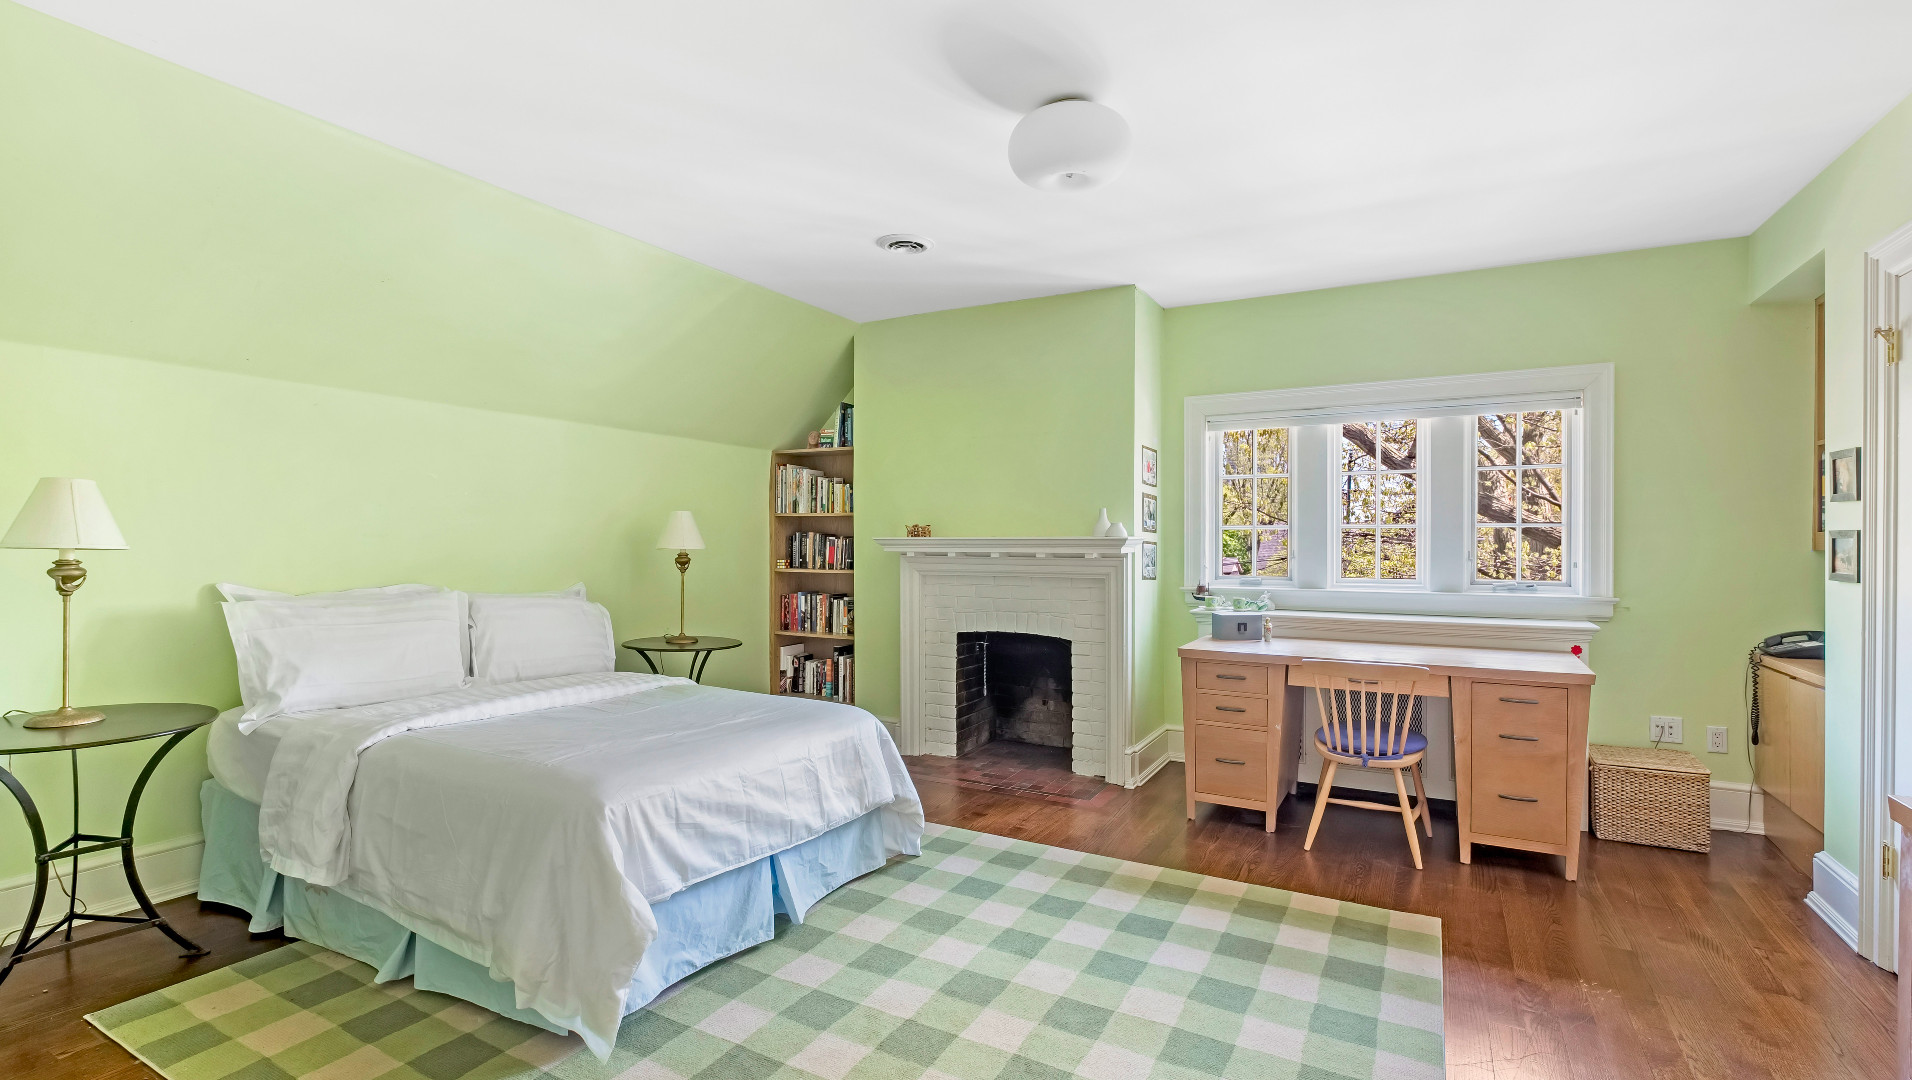 A photo of one of the third floor bedrooms.